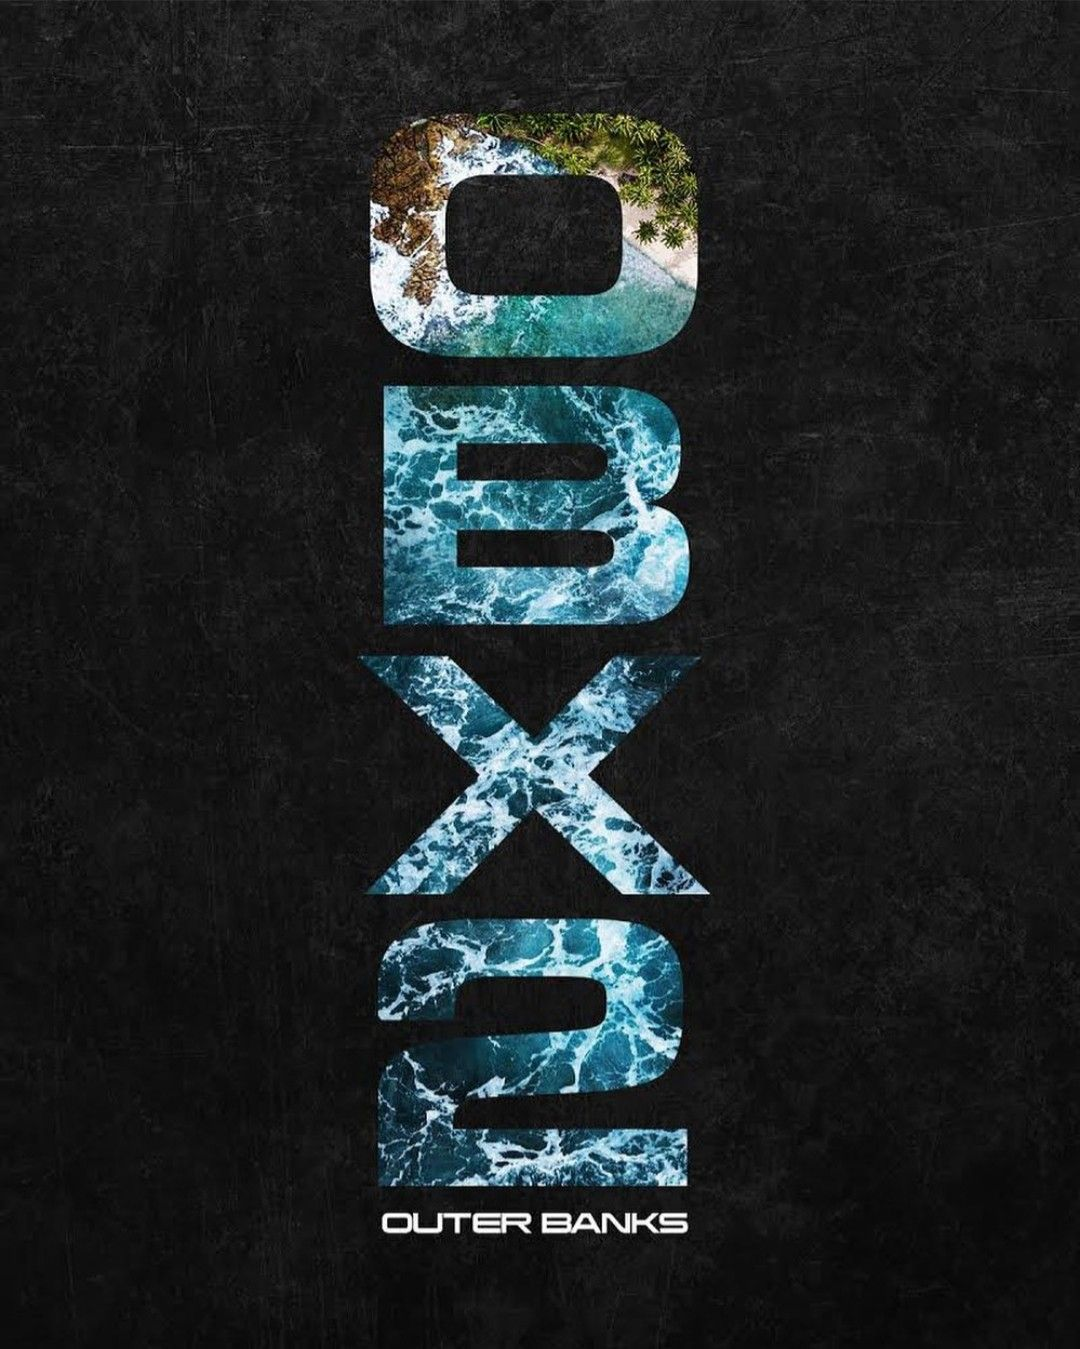 Outerbanks Season 2 I Ve Been Waiting For This One Turn It Up Netflix Just Announced S2 Of Obx Outer Banks Obx Outer